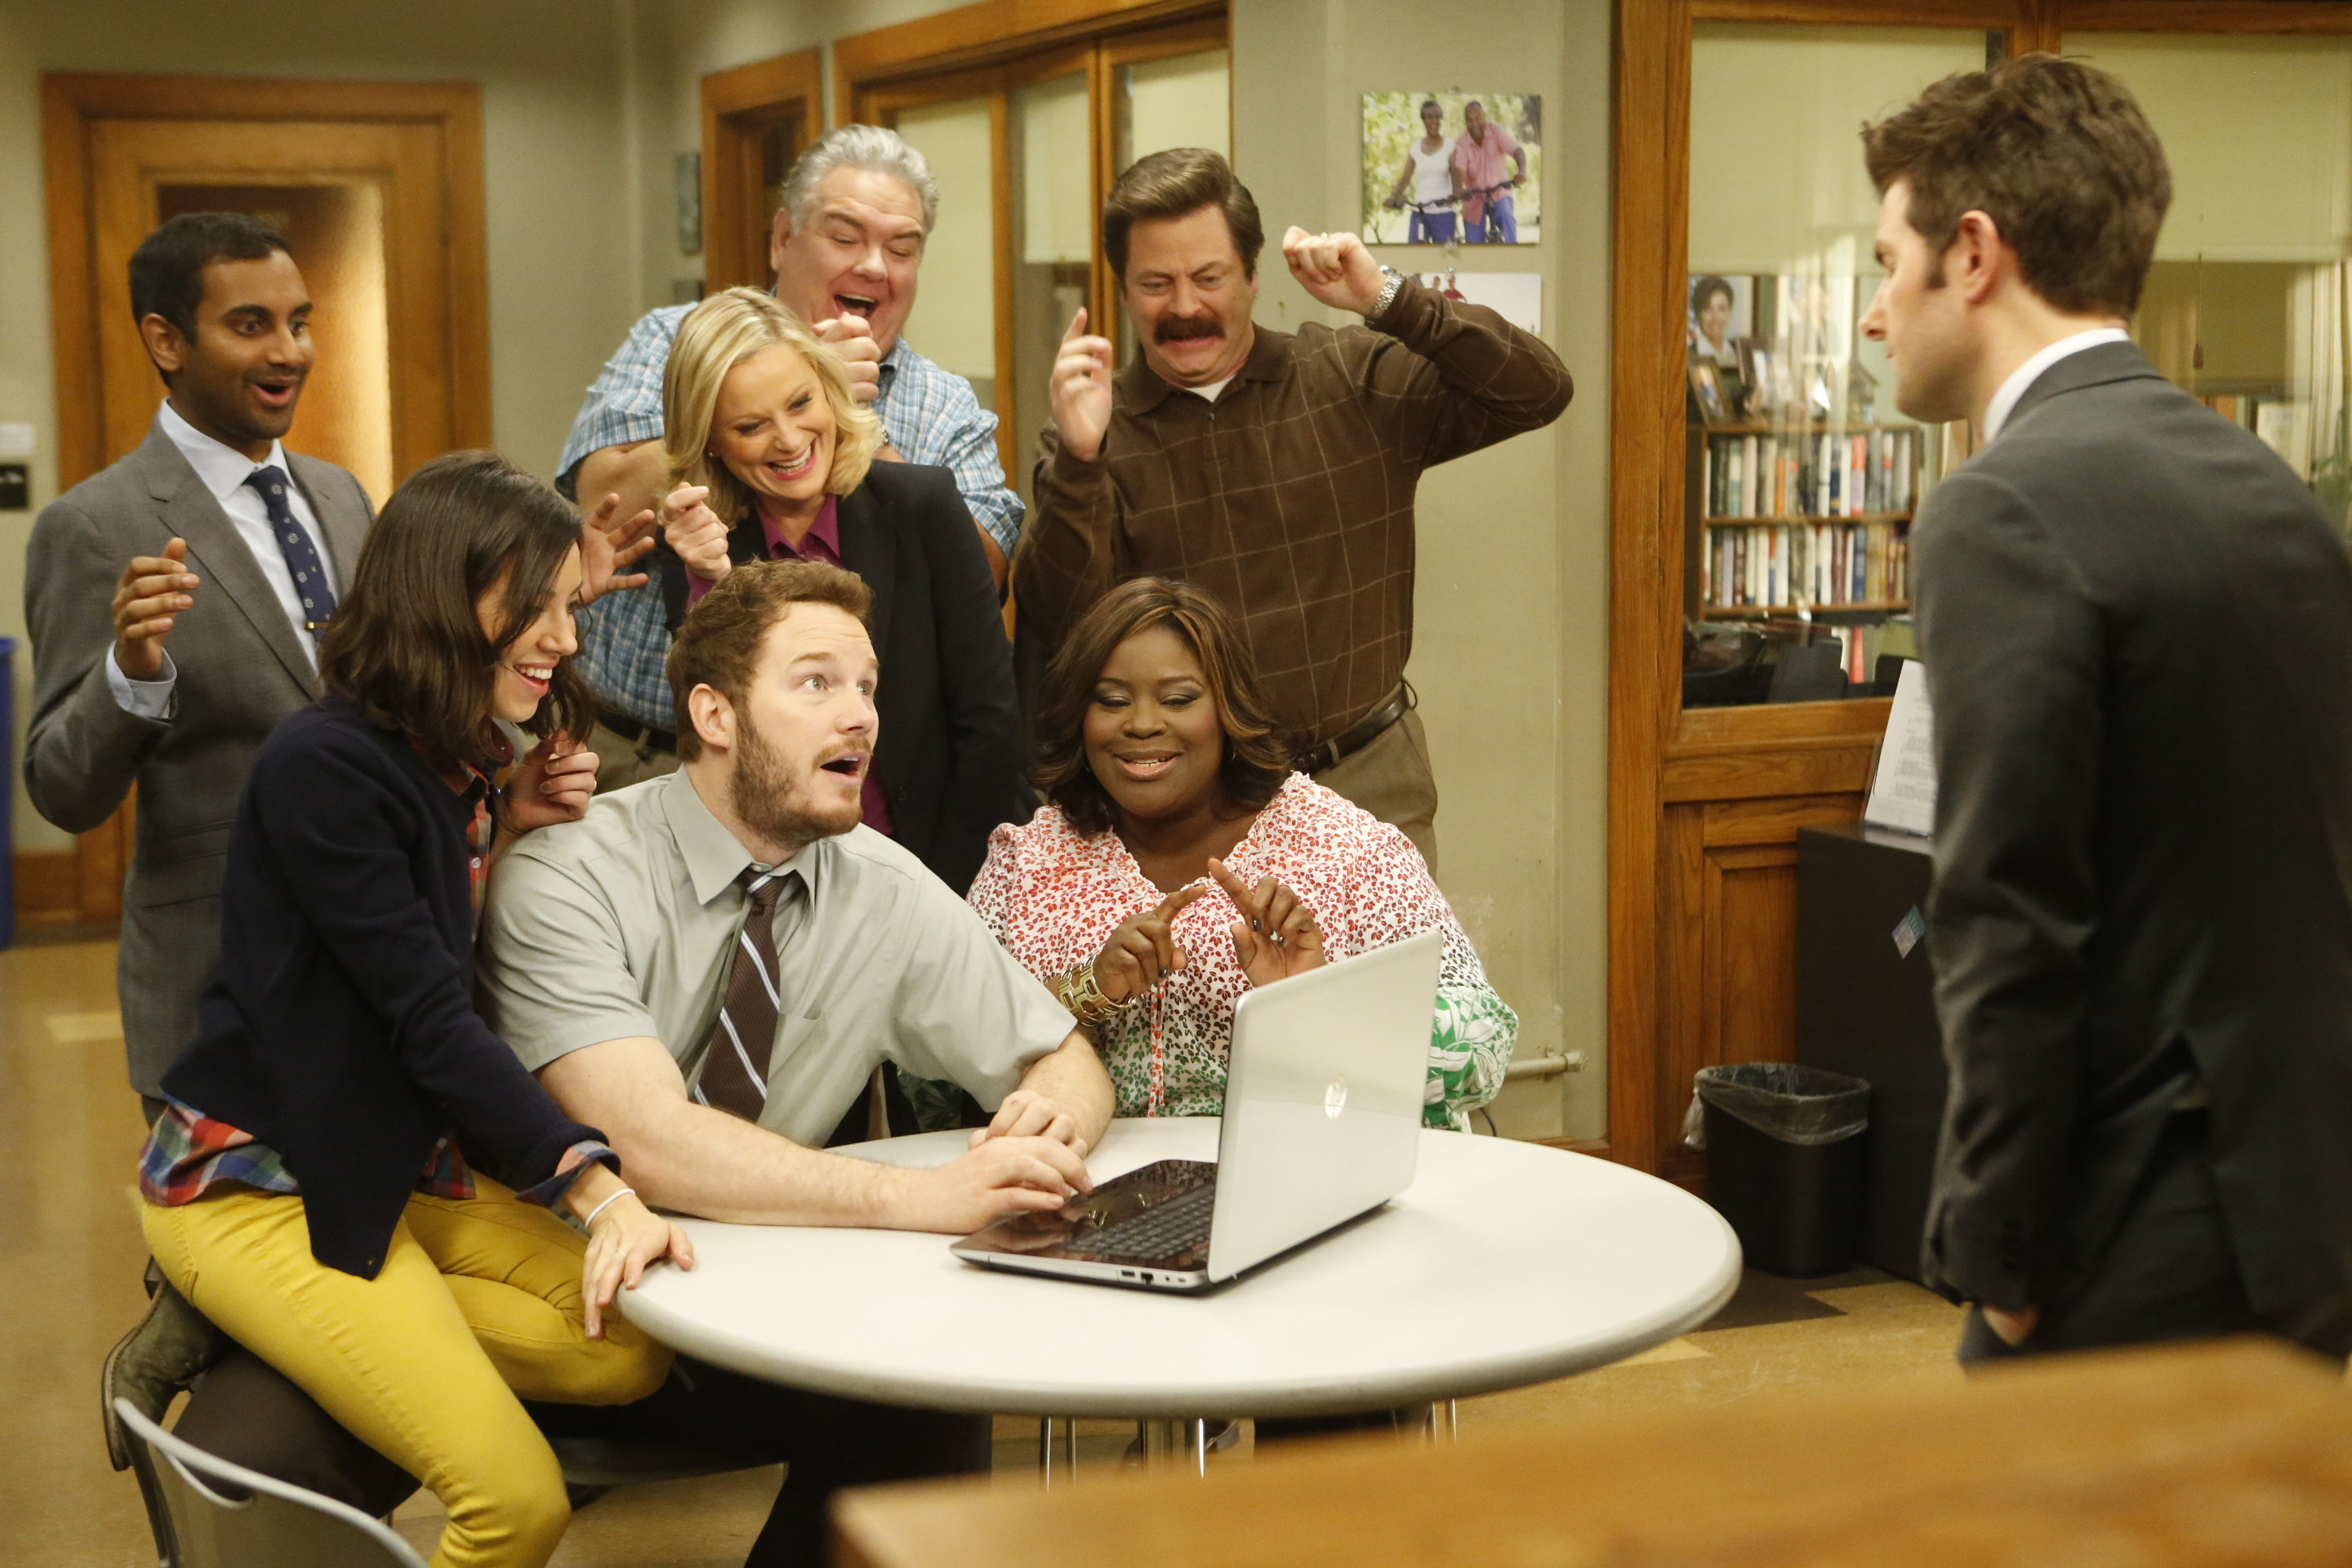 A 'Parks and Rec' gag reel to give you the heart feels